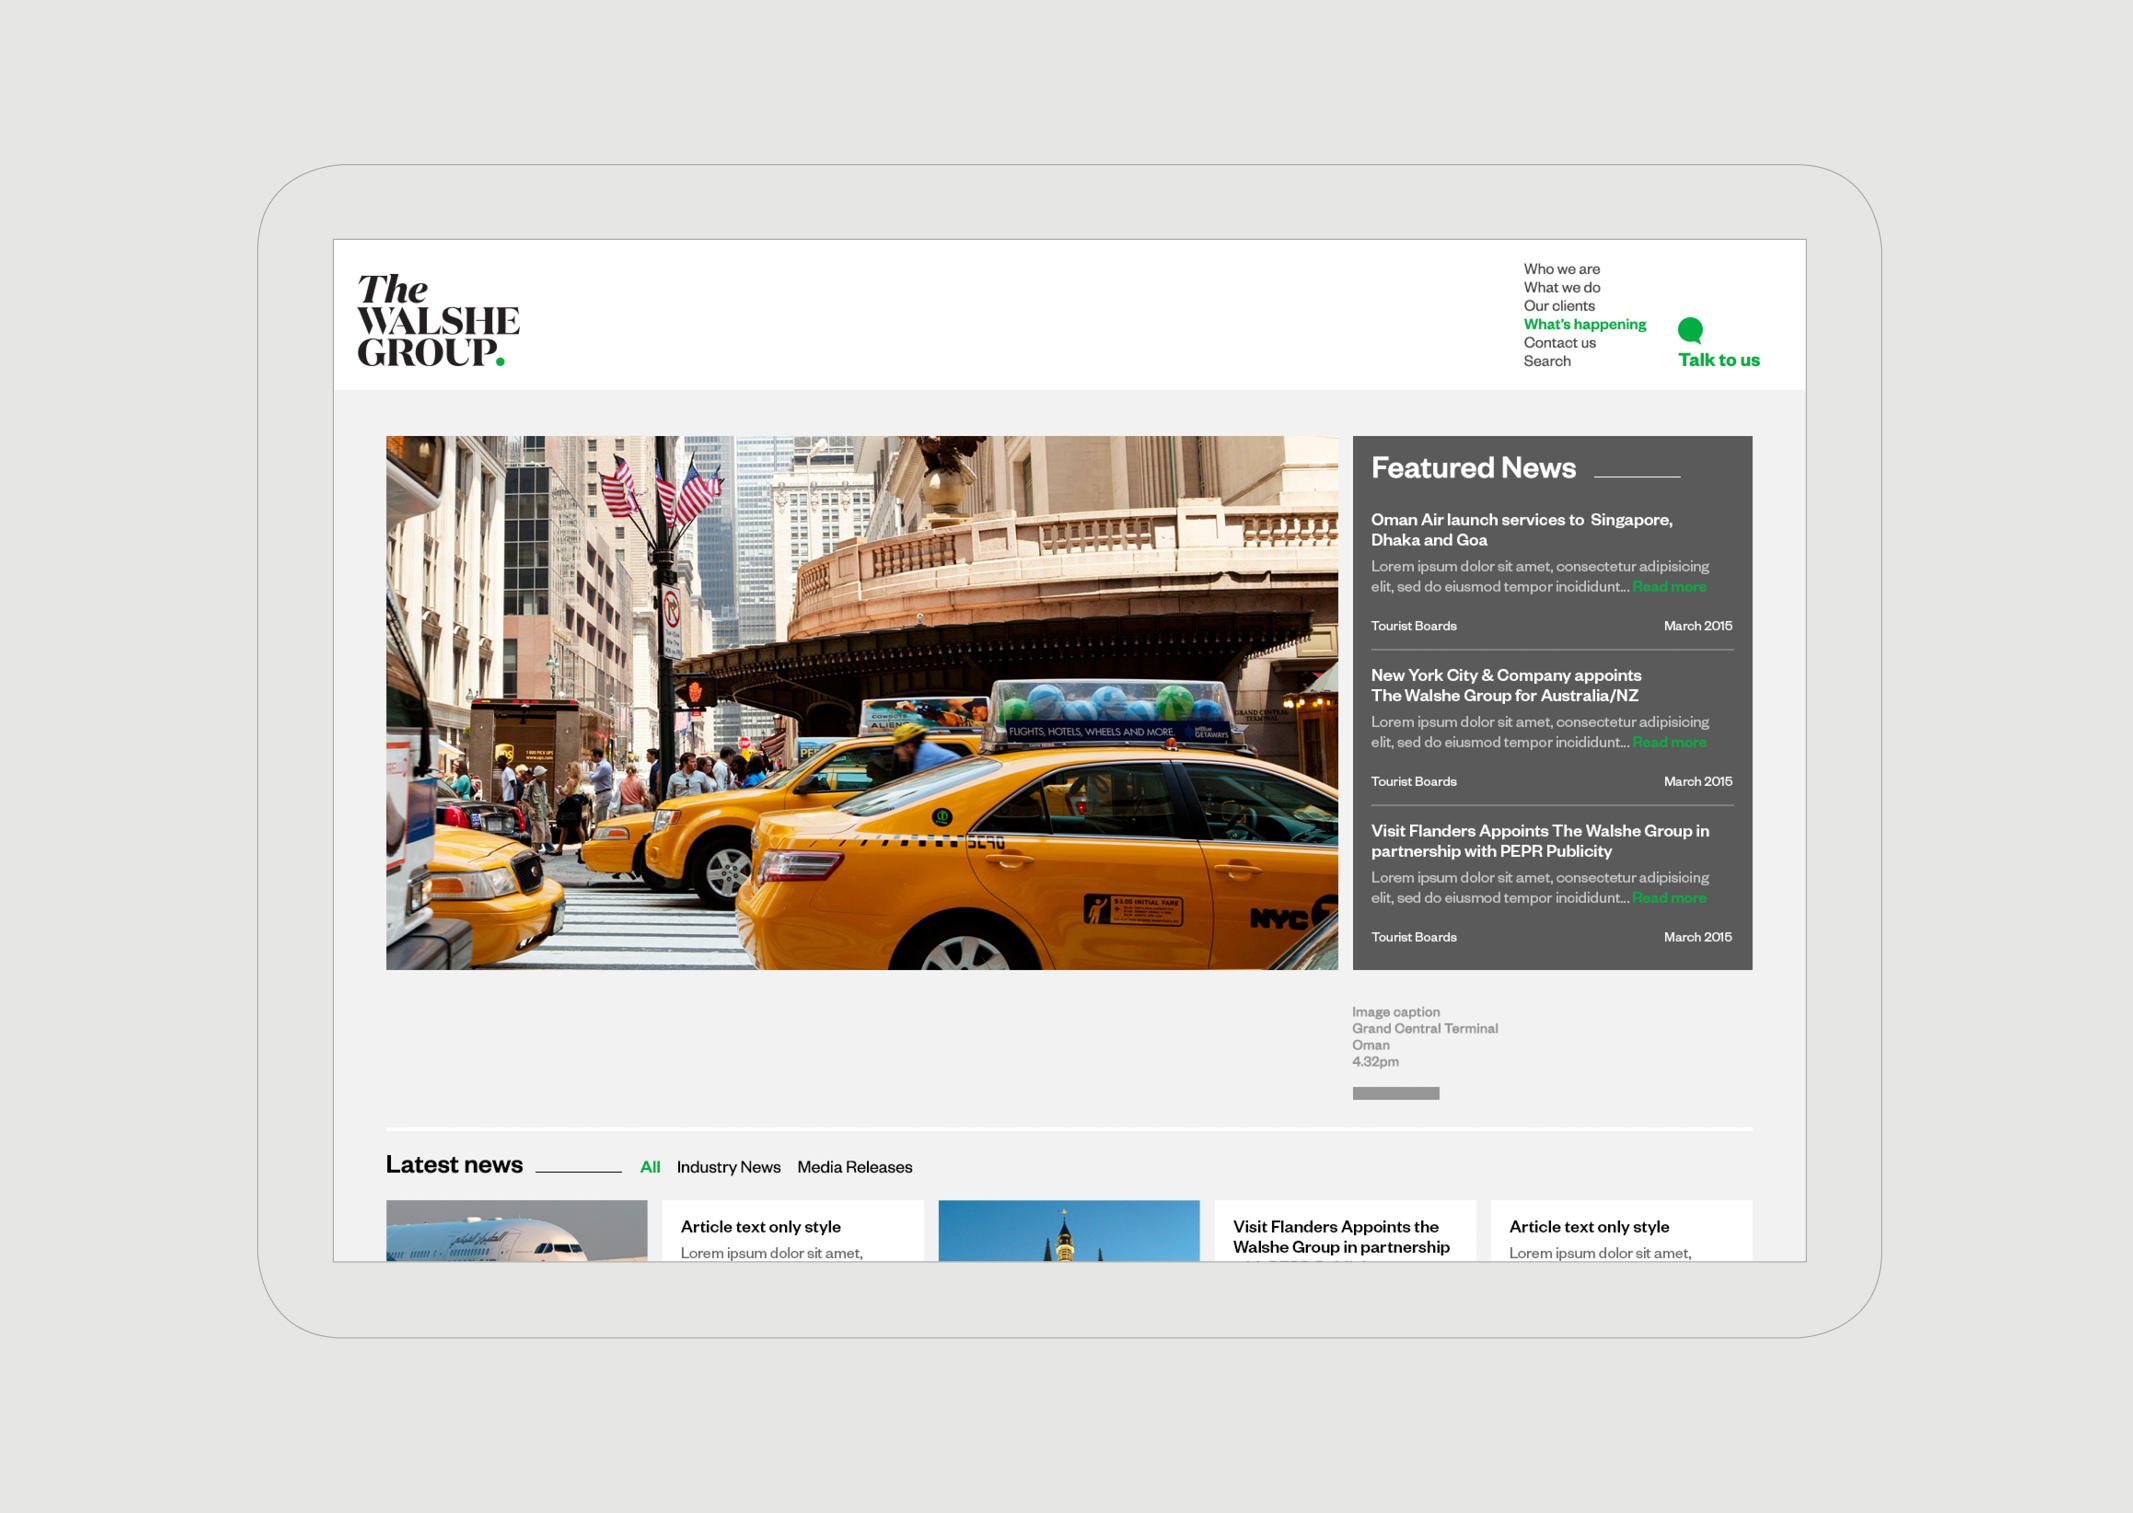 The Walshe Group Website – News Page showing Featured Articles and NYC Taxi image